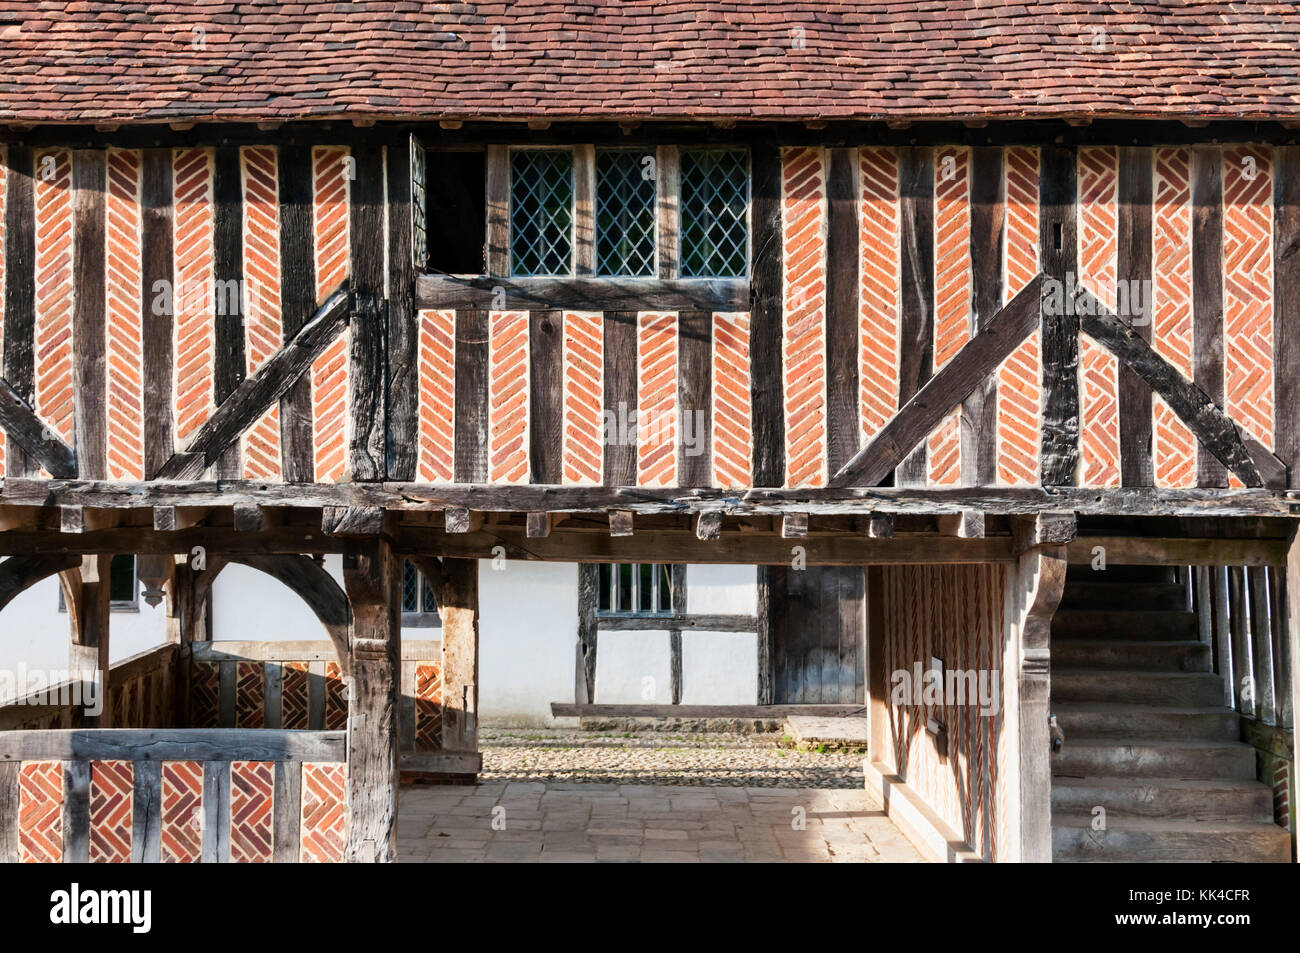 Detail of Titchfield Market Hall of 1619, relocated and reconstructed at the Weald and Downland Open Air Museum - Stock Image